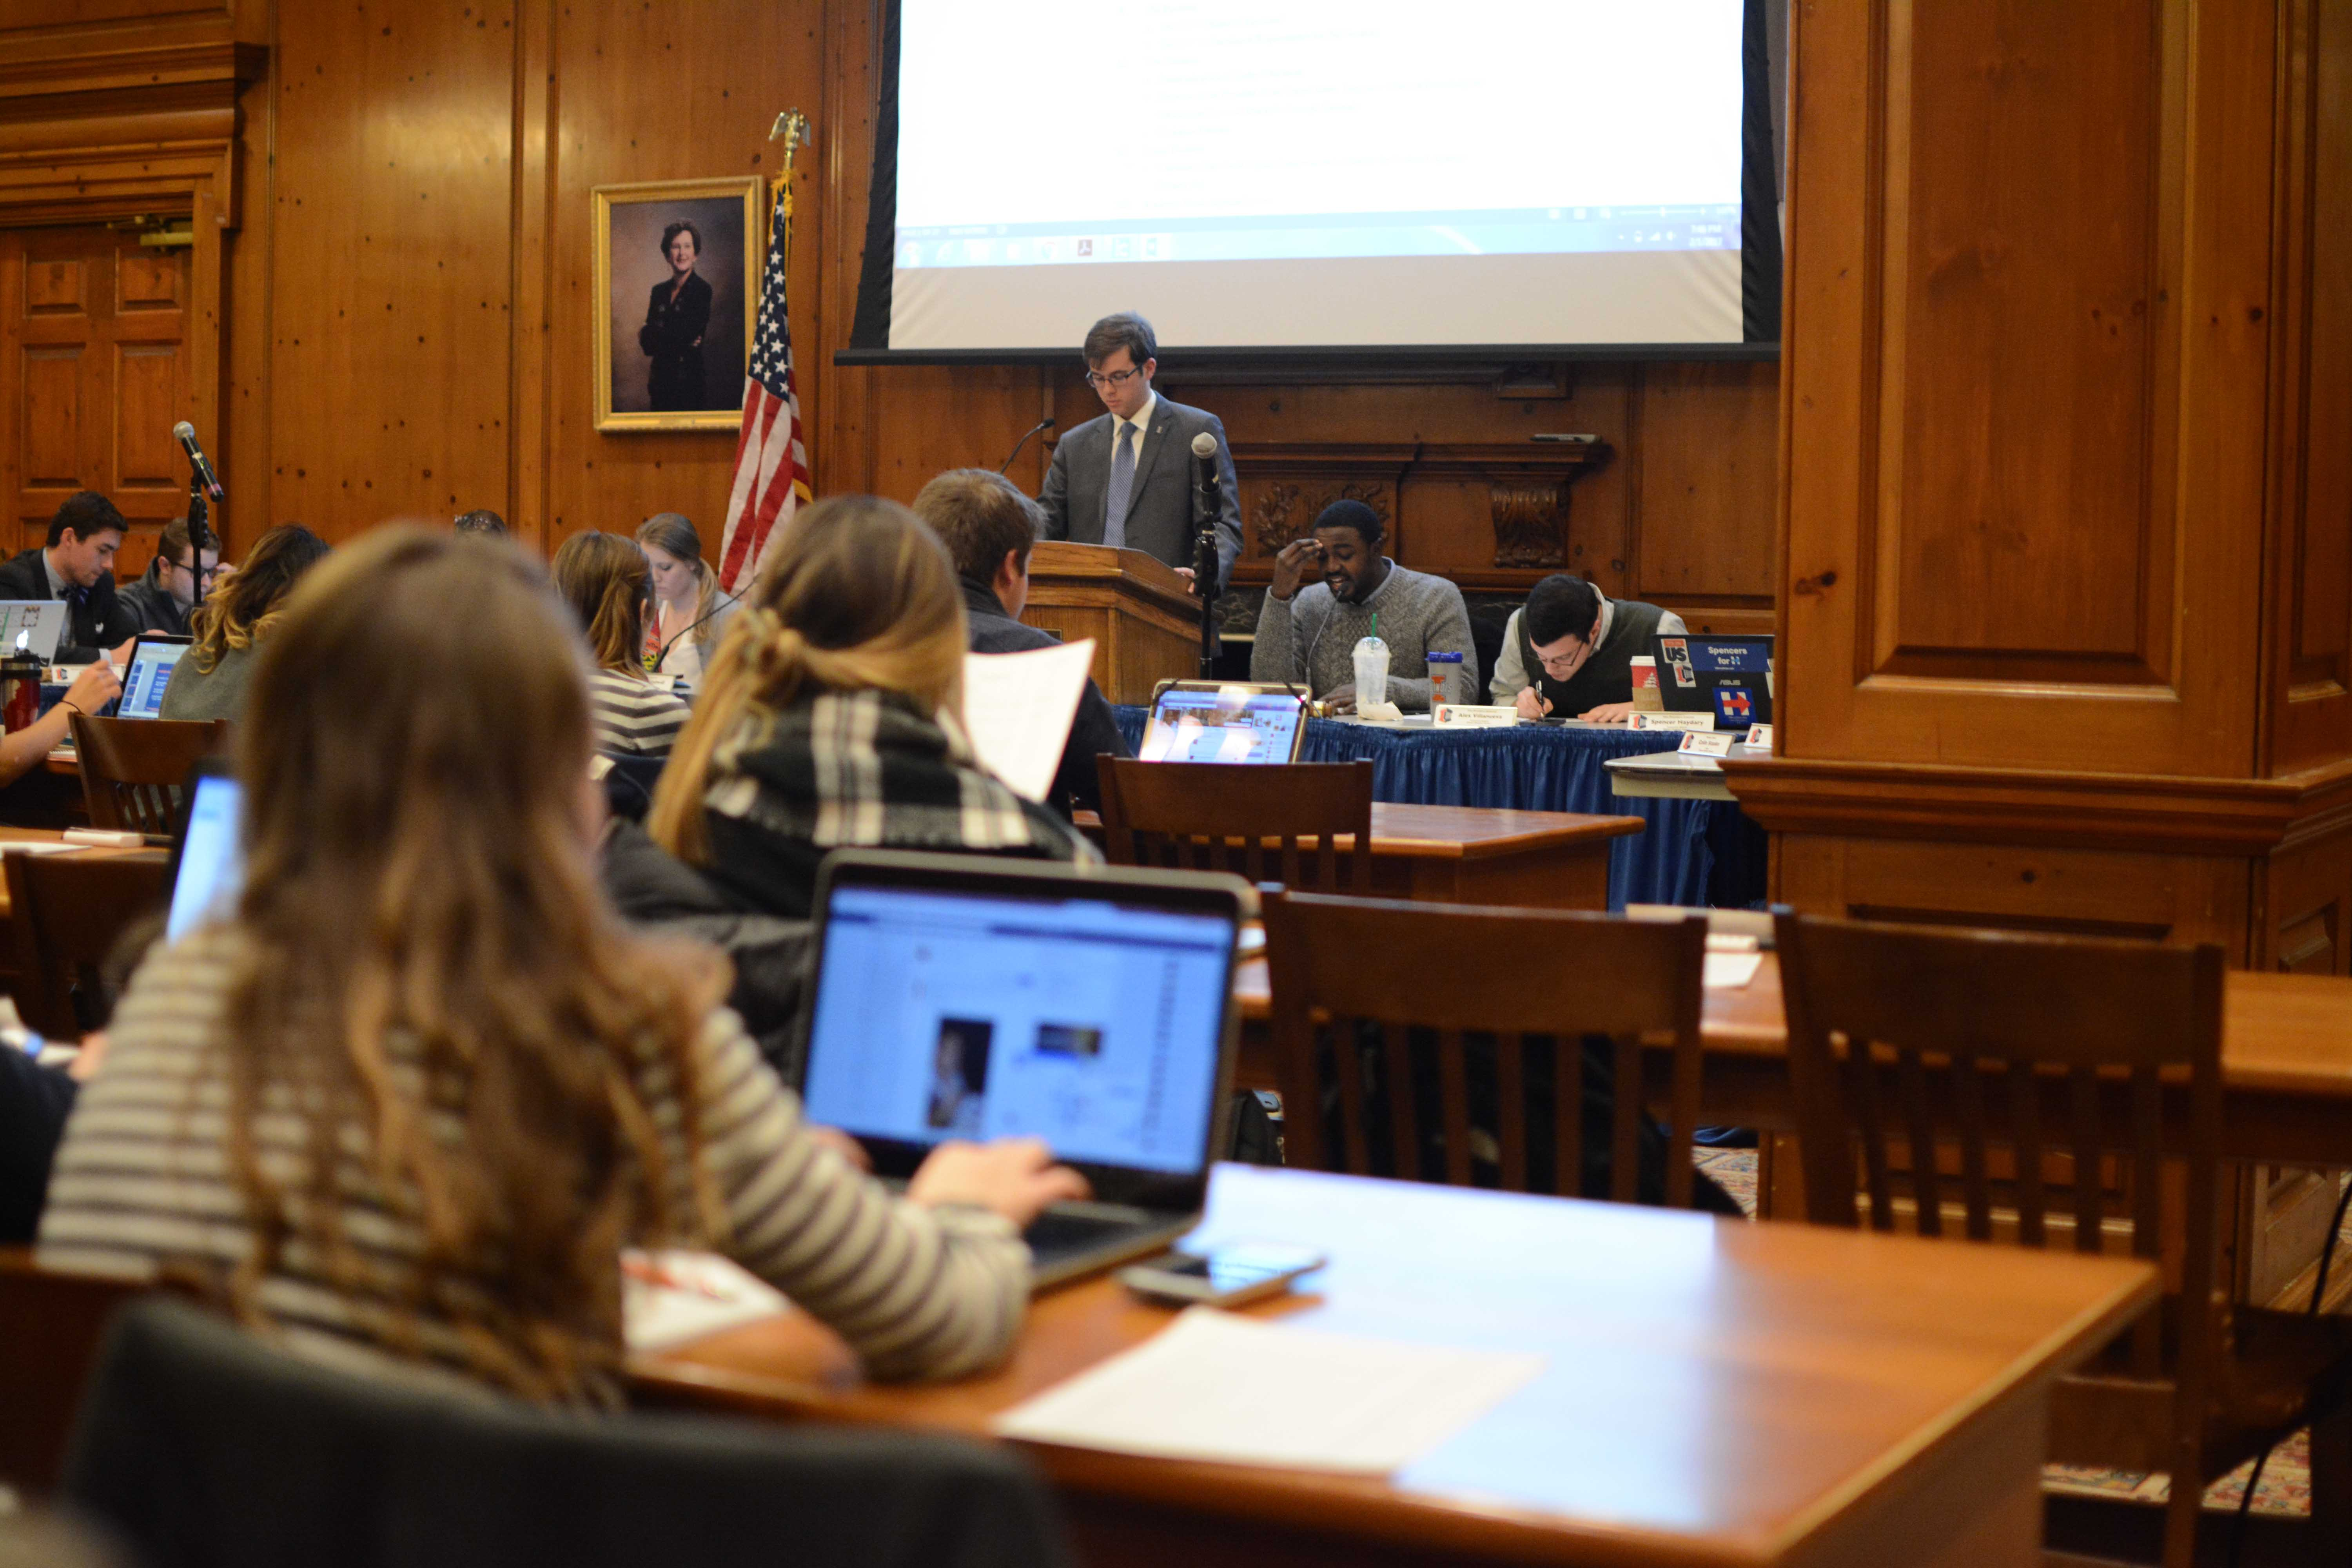 The Illinois Student Government meets in the Pine Room in the Illini Union.